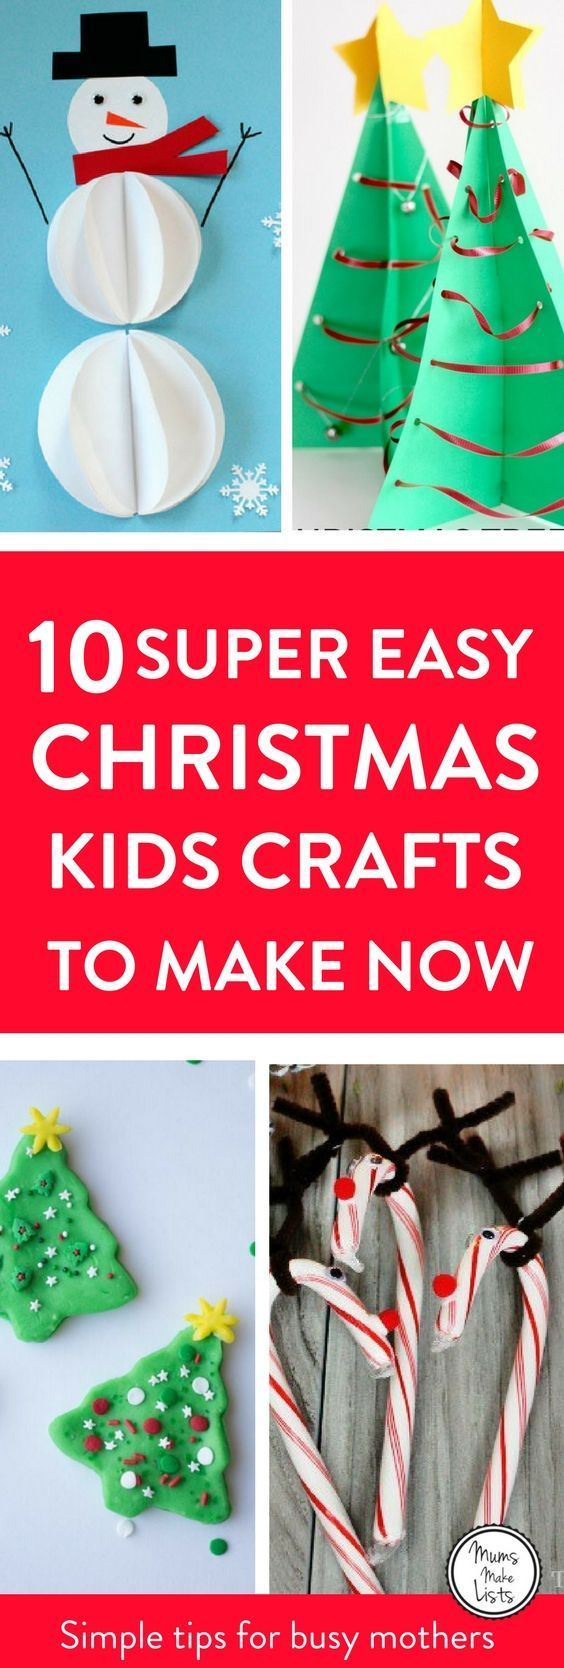 Christmas crafts for kids to make! Here are ten super easy Christmas crafts for kids to make on their own - or with minimal help. We have got paper based crafts, Christmas card and decoration ideas. There is also a lovely lolly stick idea and one using pi